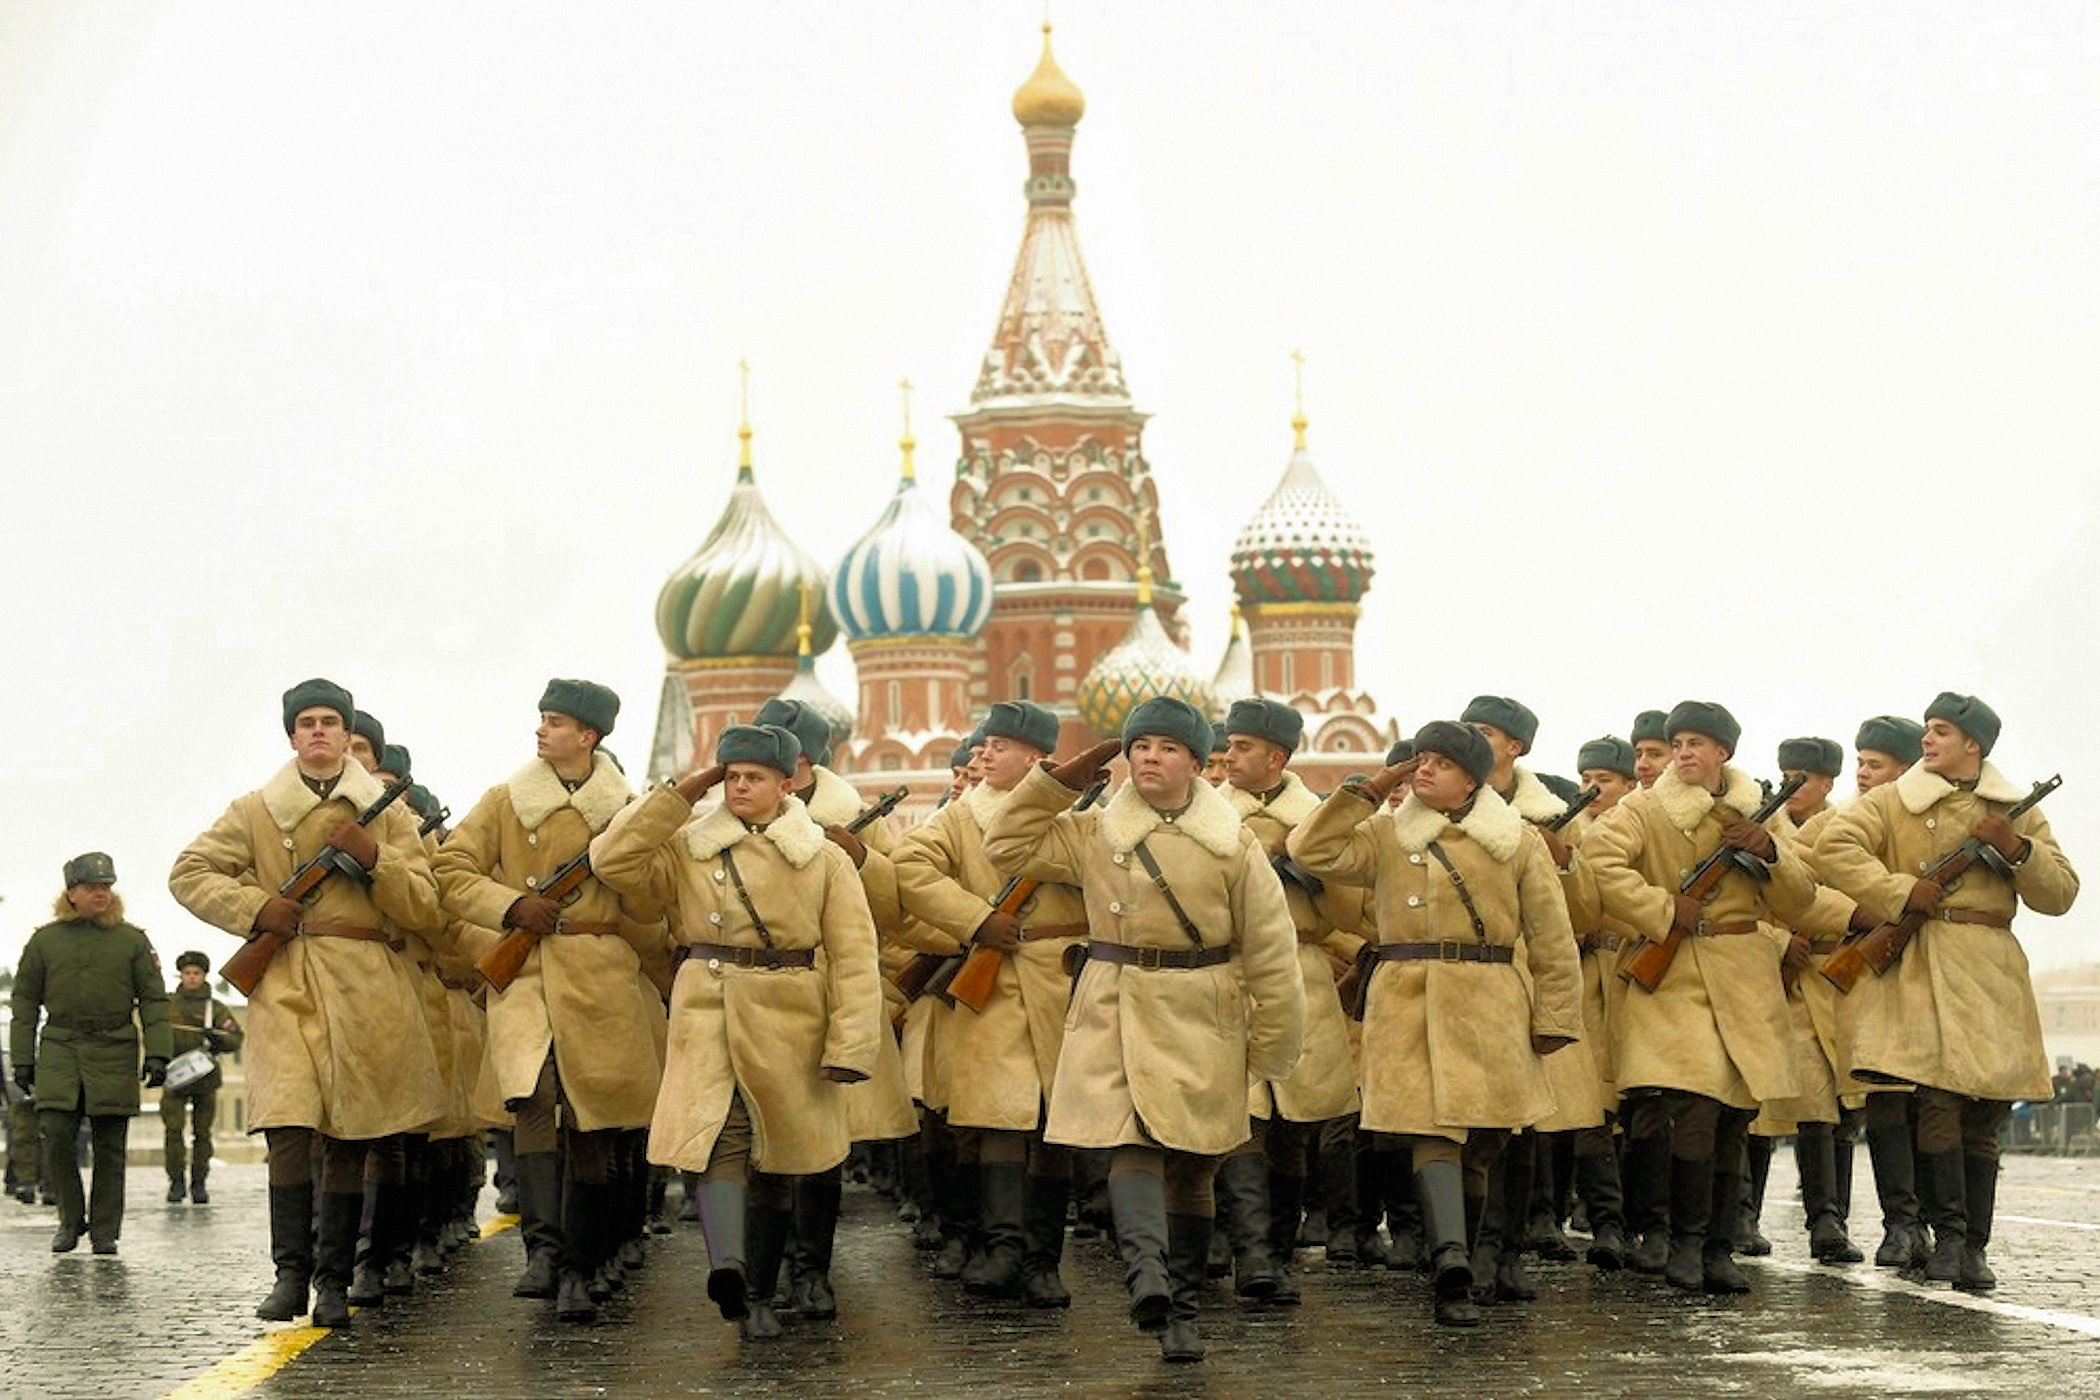 00-russia-red-square-7-november-06-201116